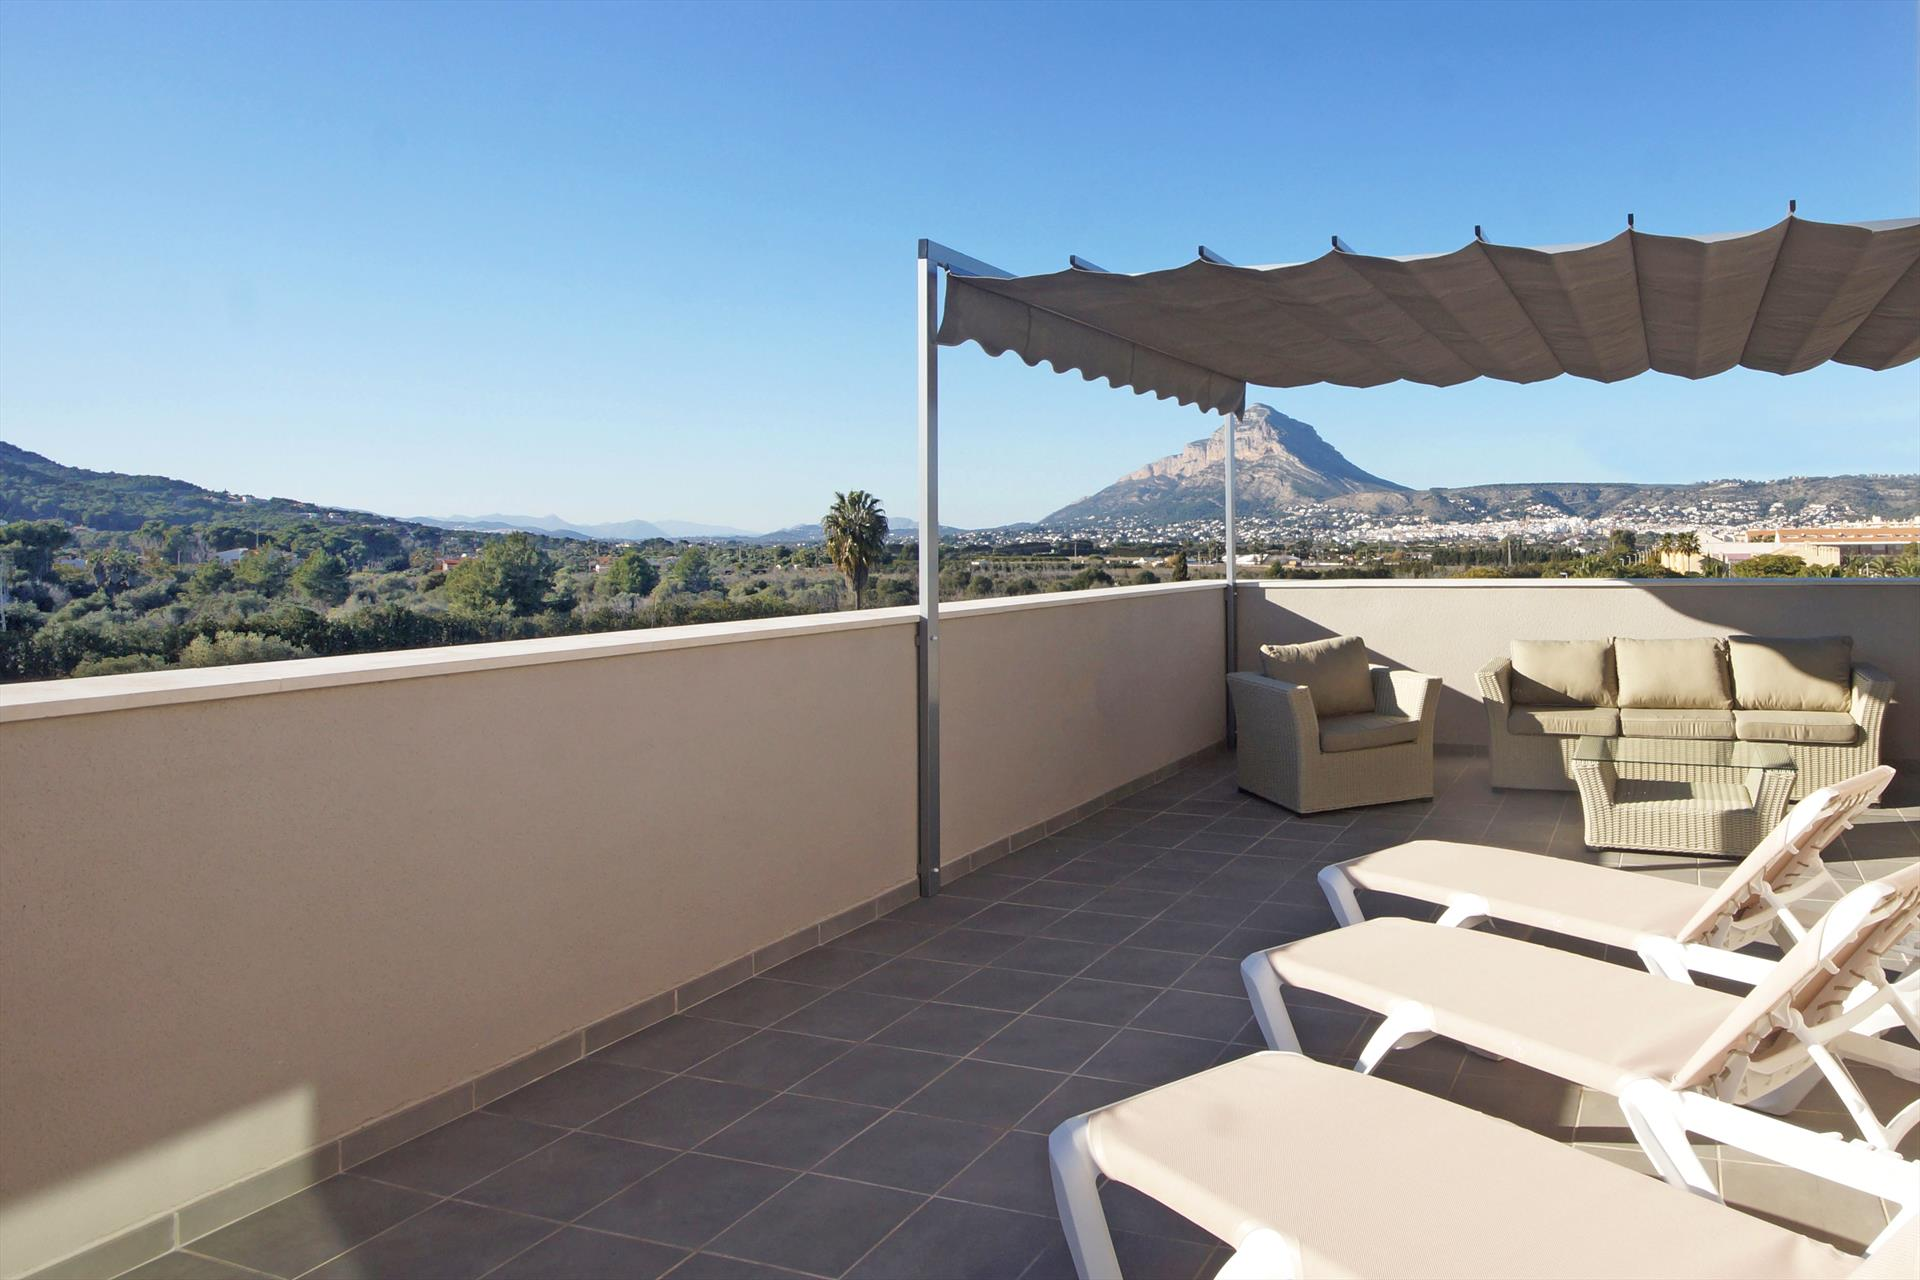 Atico La Haya LT, Beautiful duplex apartment with lovely roof terrace overlooking the mountain Montgo and within walking distance of several.....